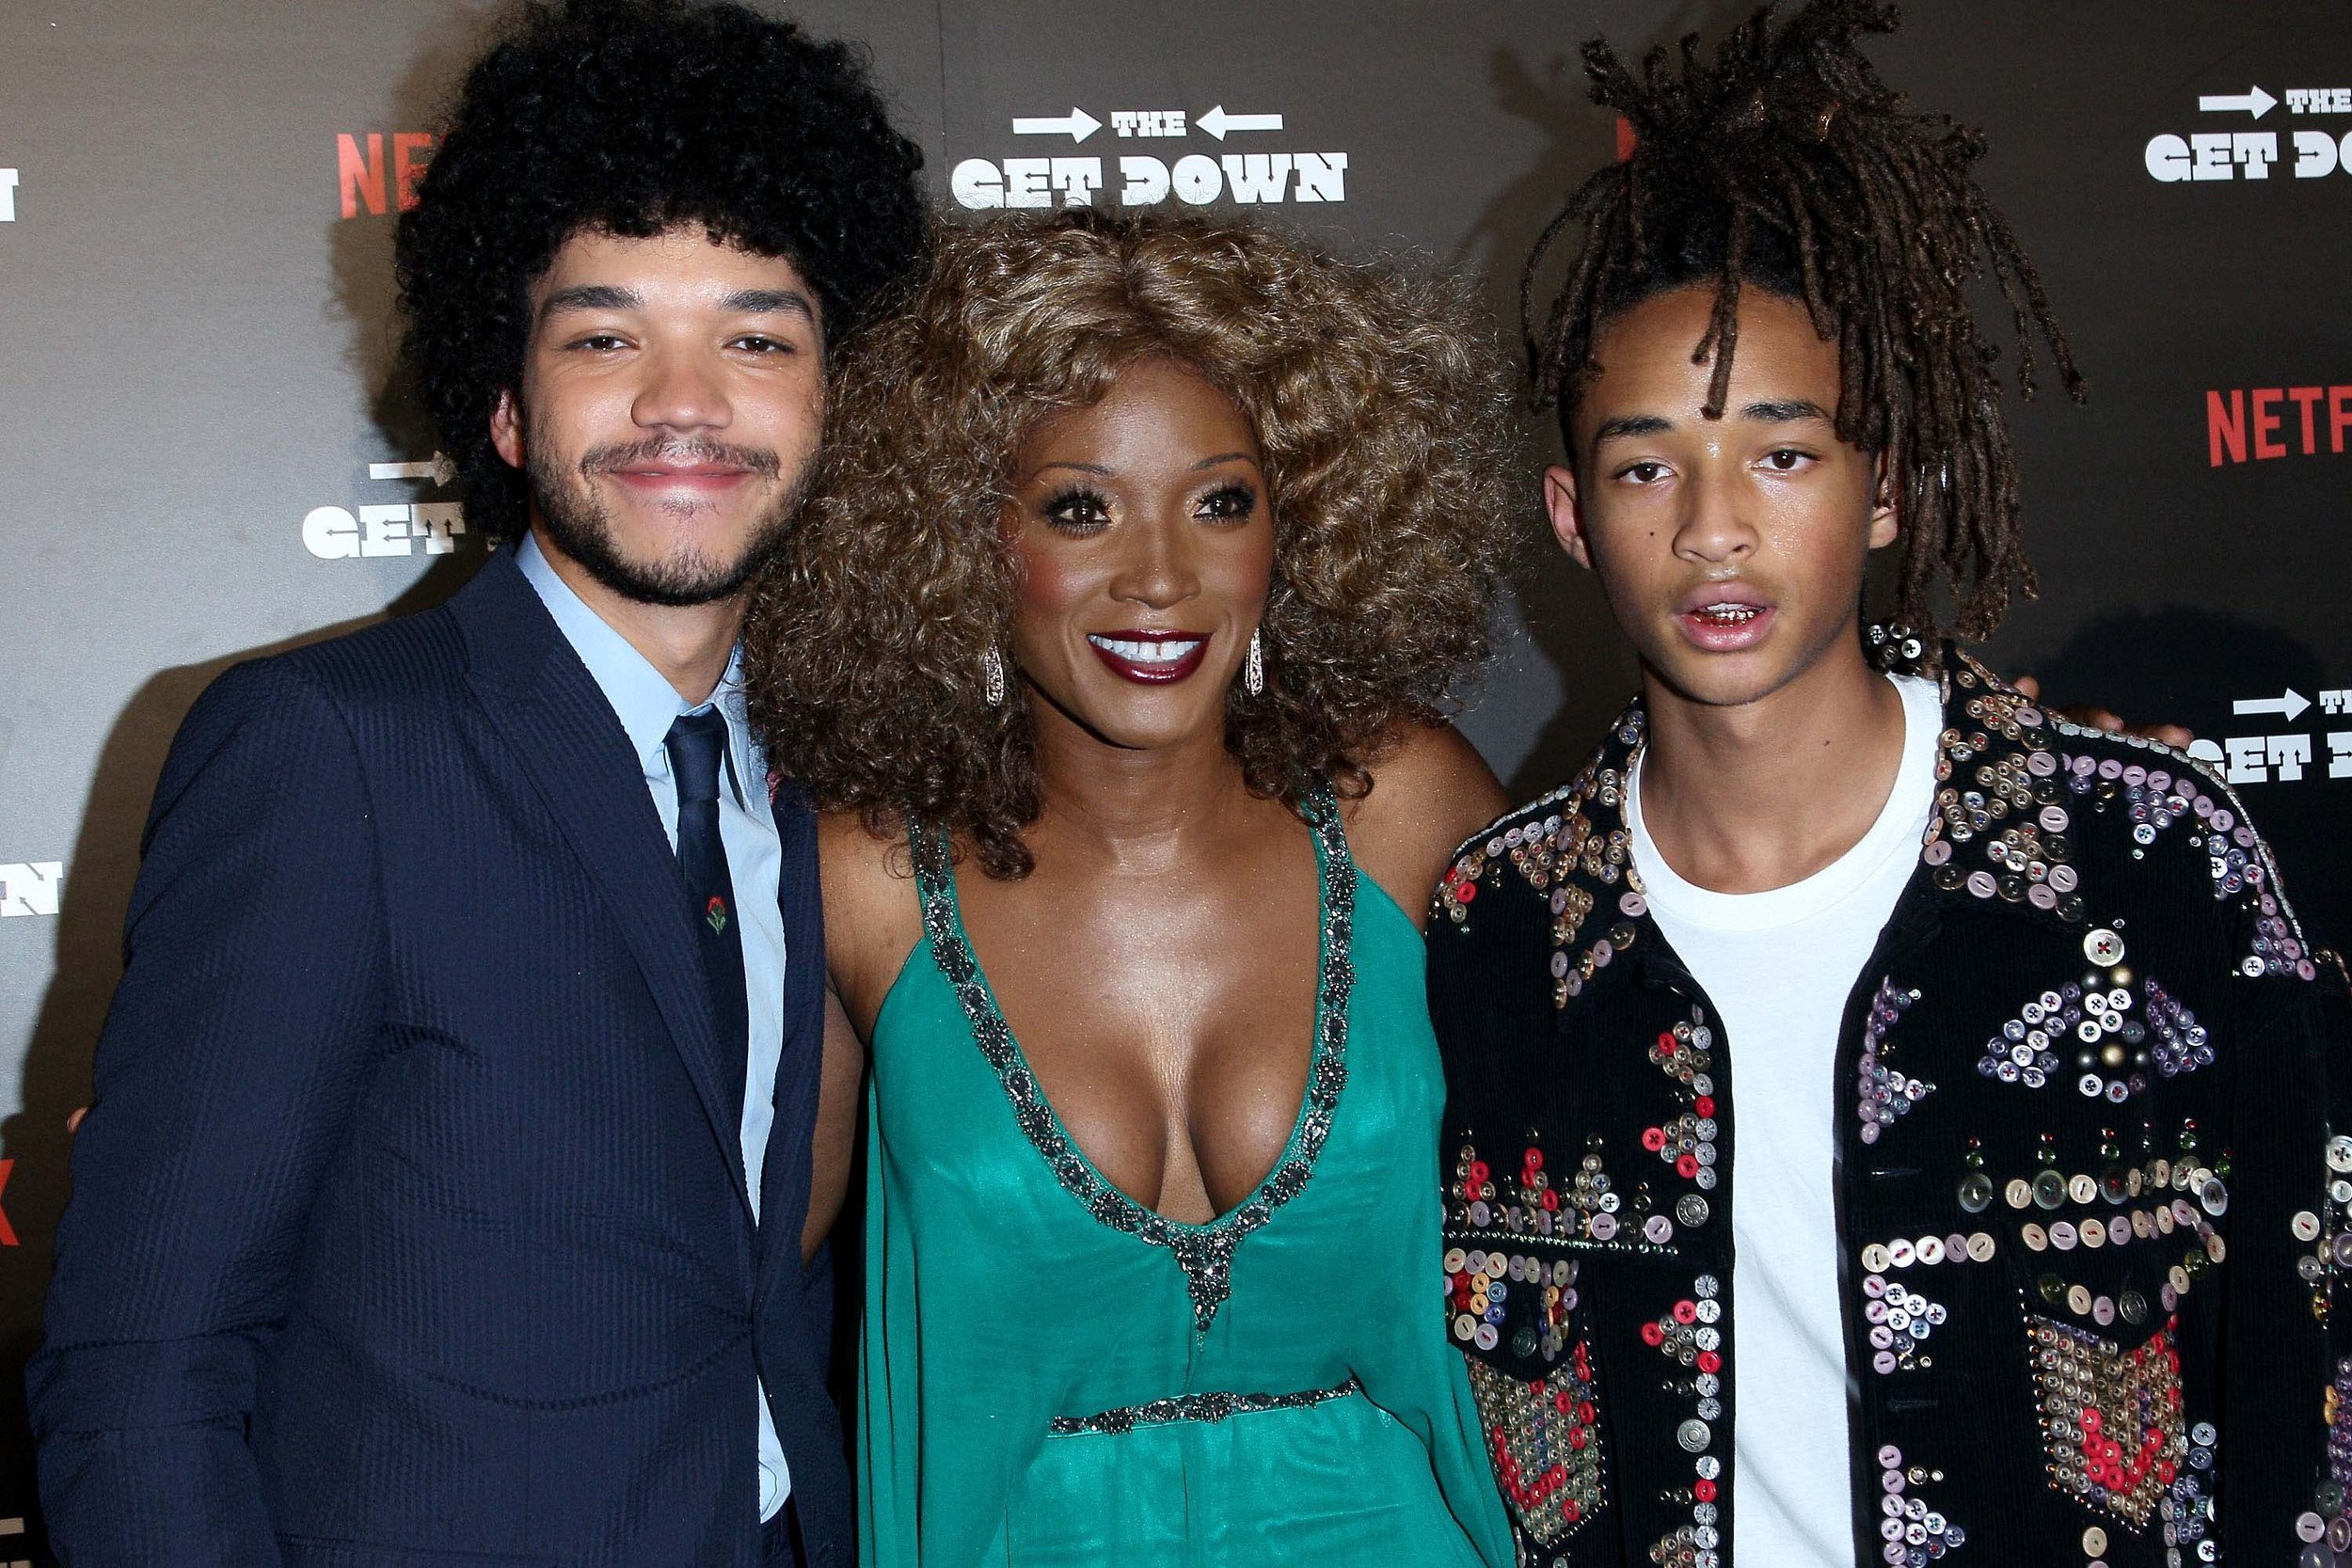 The Get Down Premiere